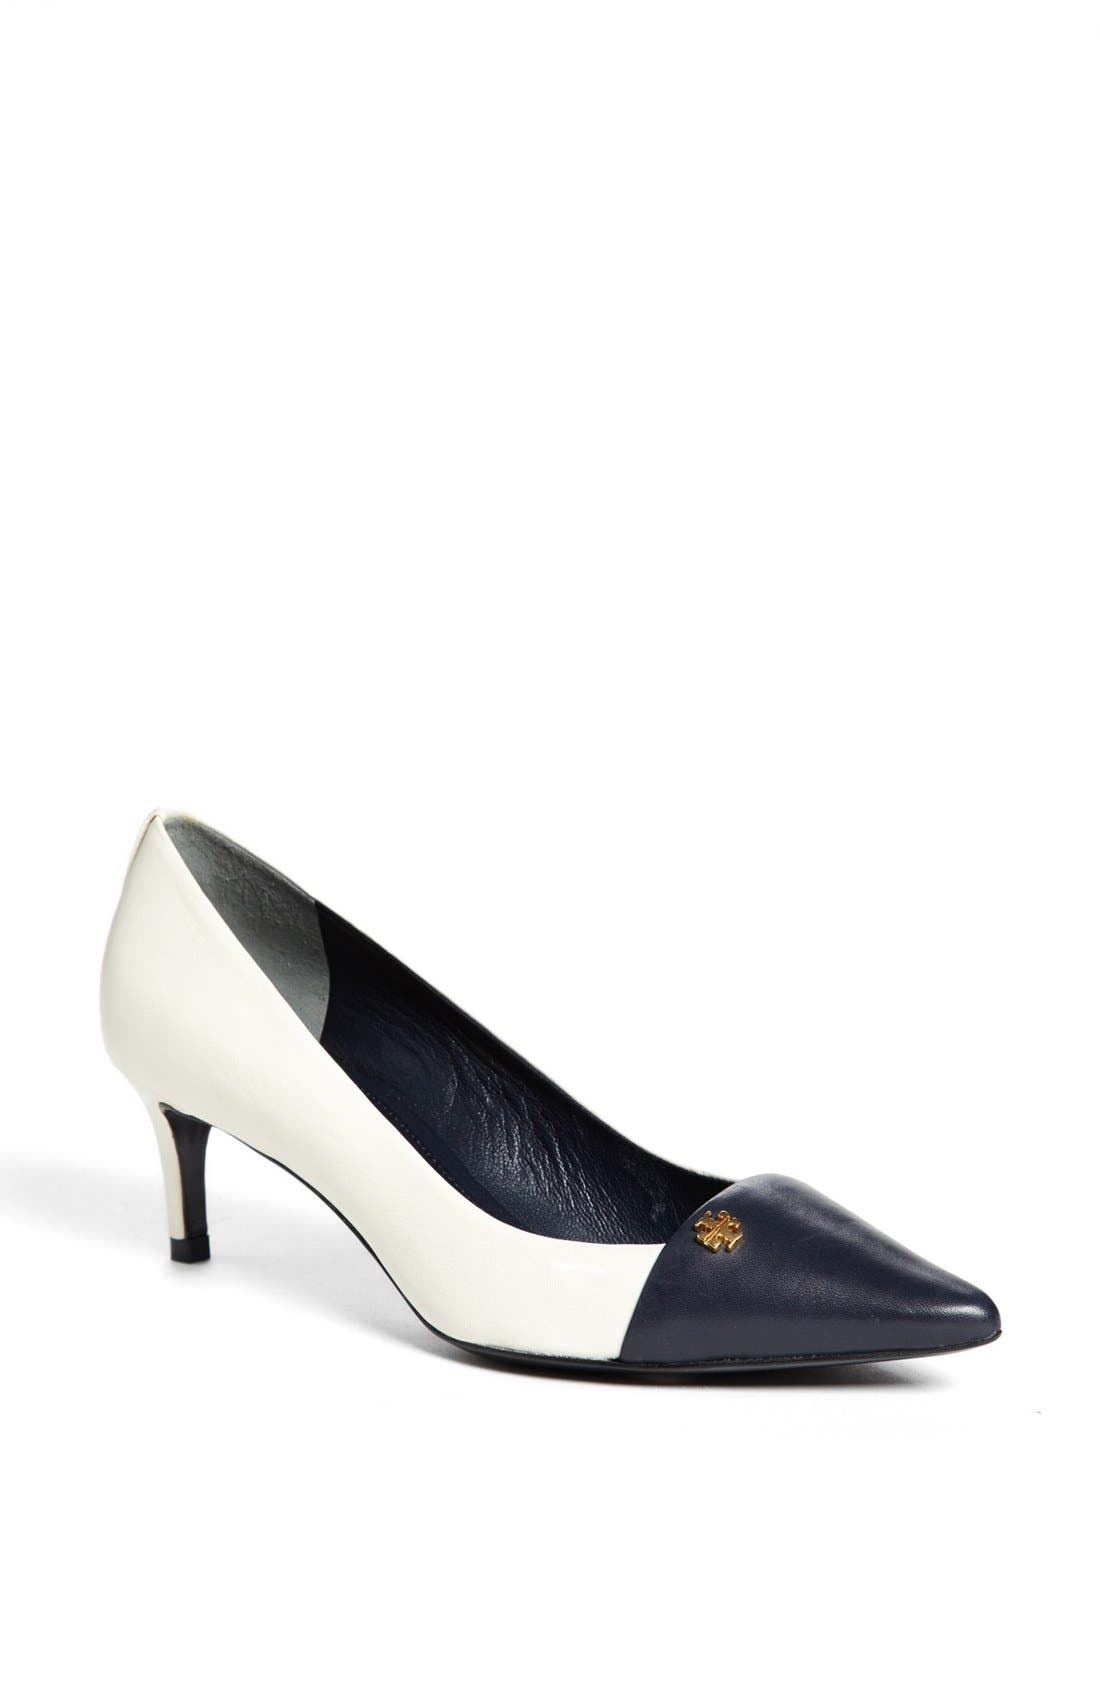 Alternate Image 1 Selected - Tory Burch 'Crawford' Pump (Online Only)